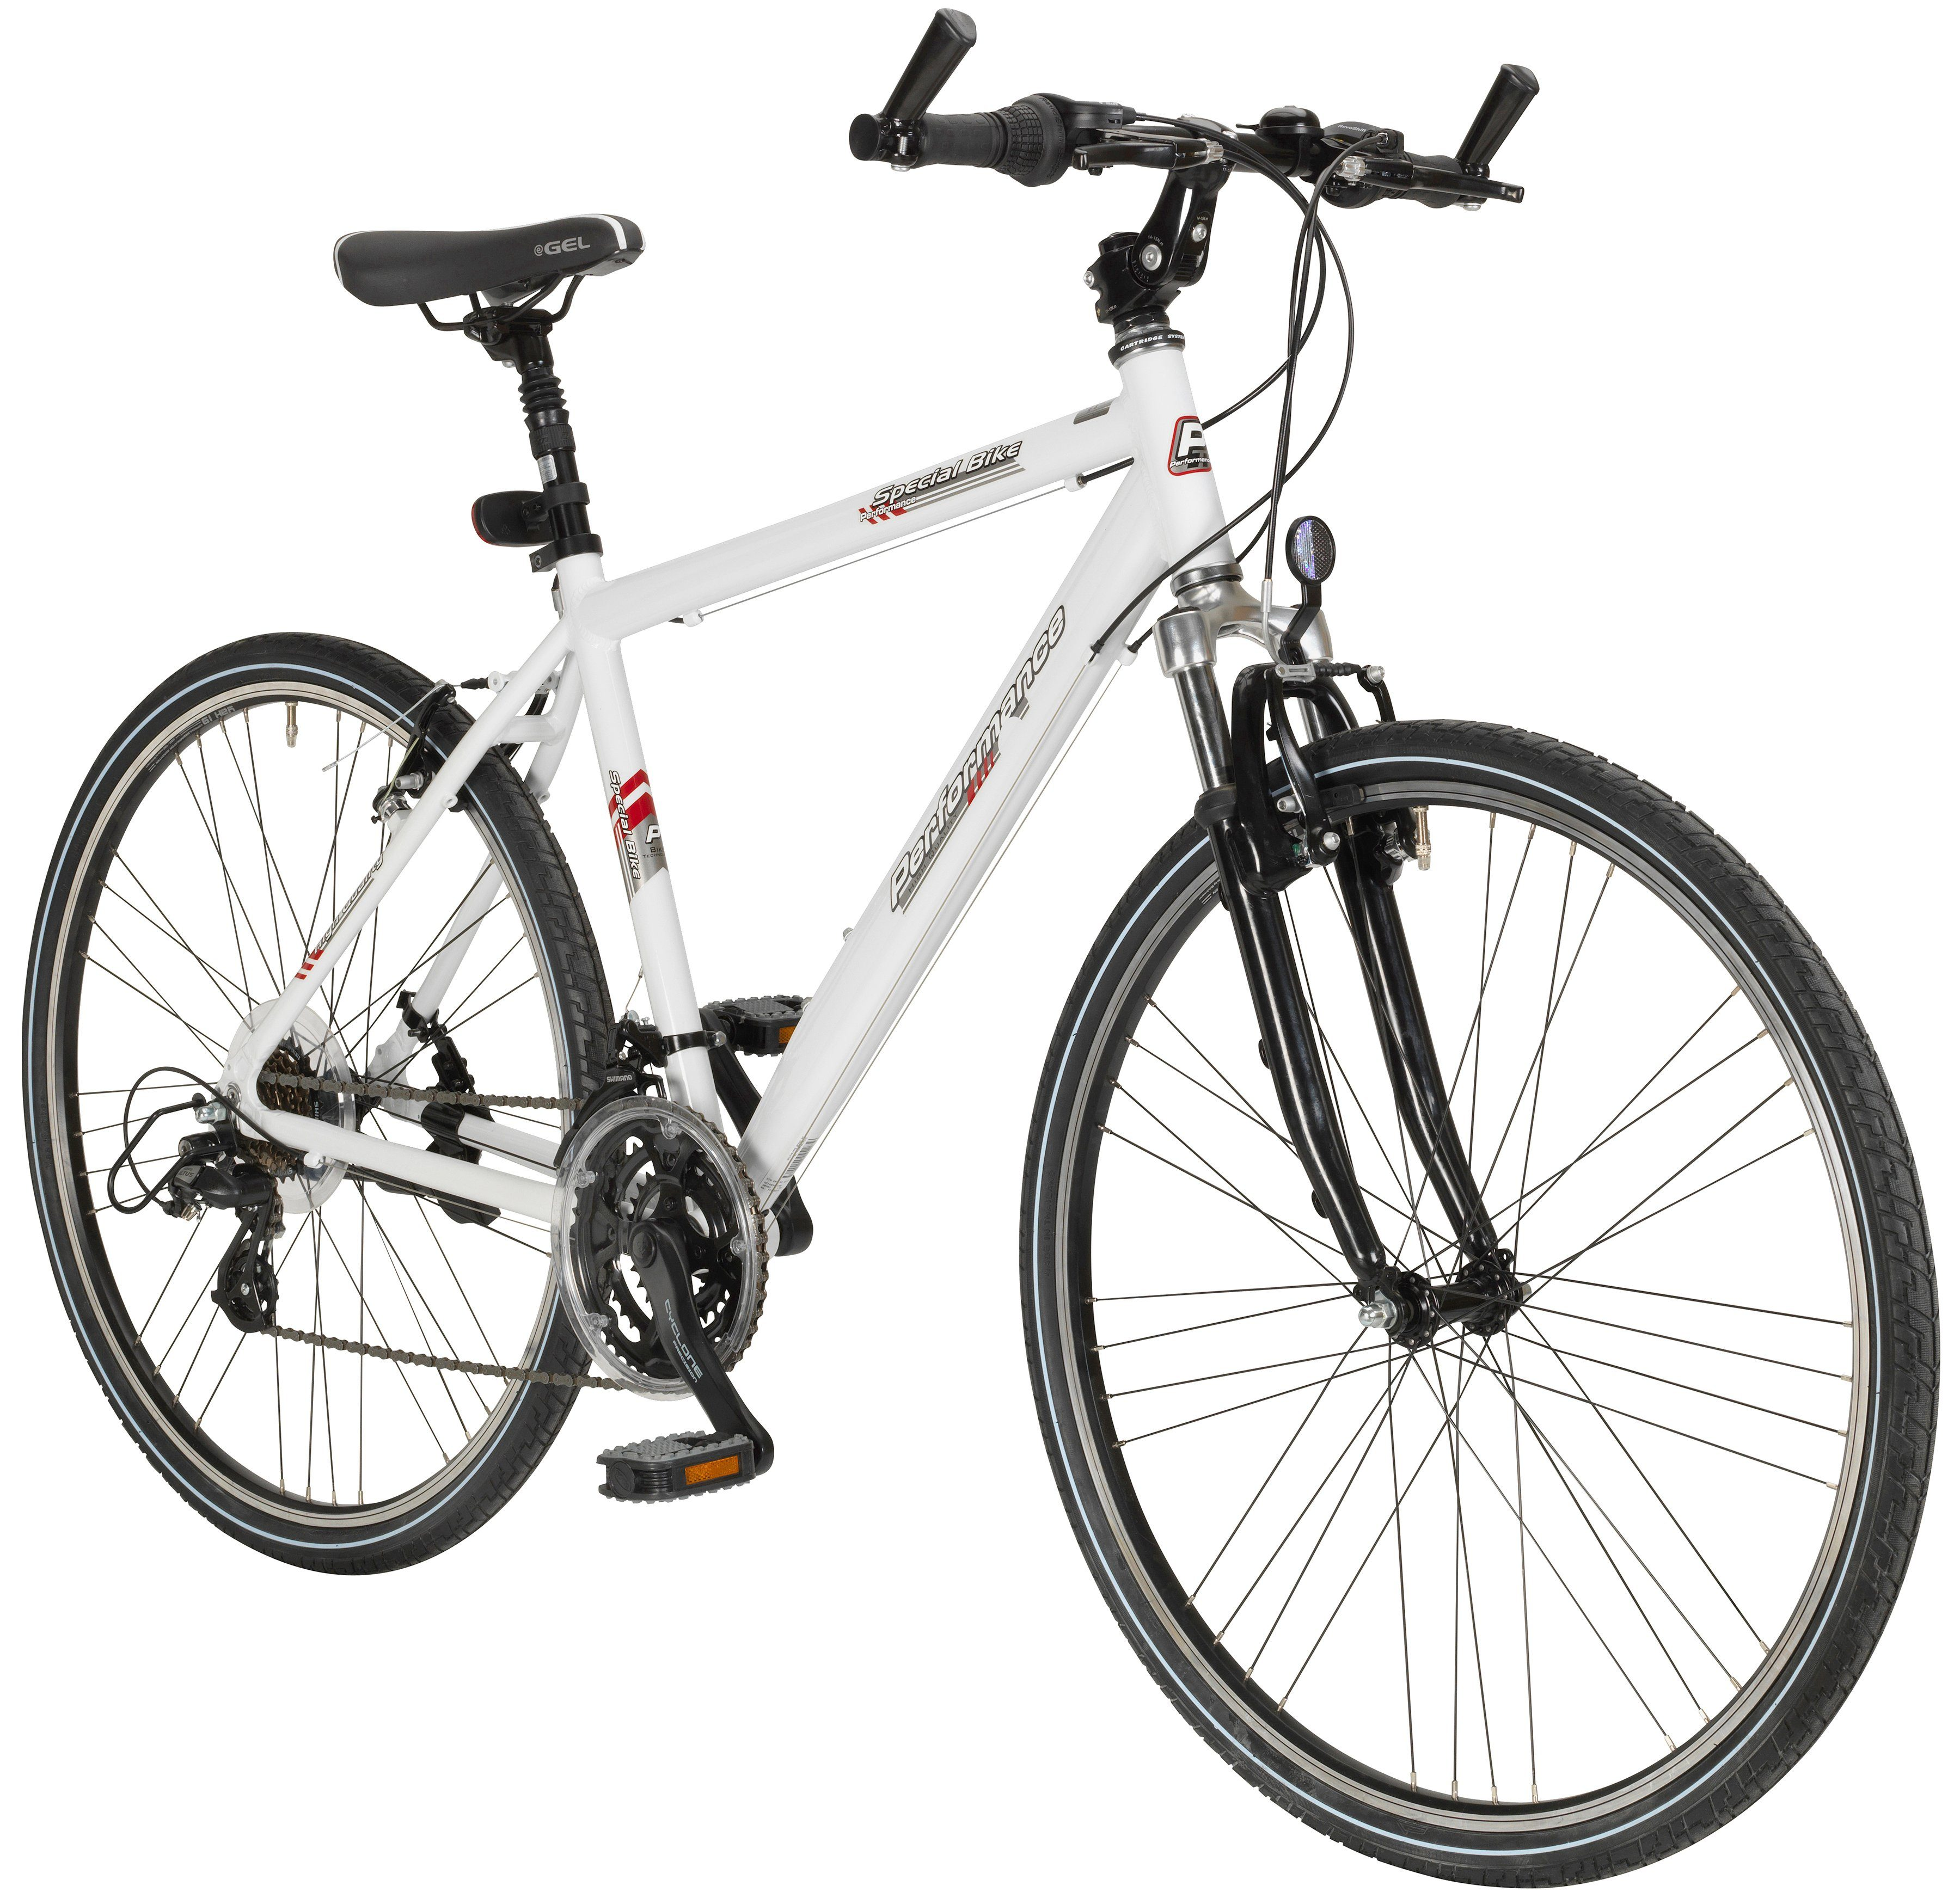 PERFORMANCE Crossbike »Melbourne«, 28 Zoll, 21 Gang, V-Bremsen